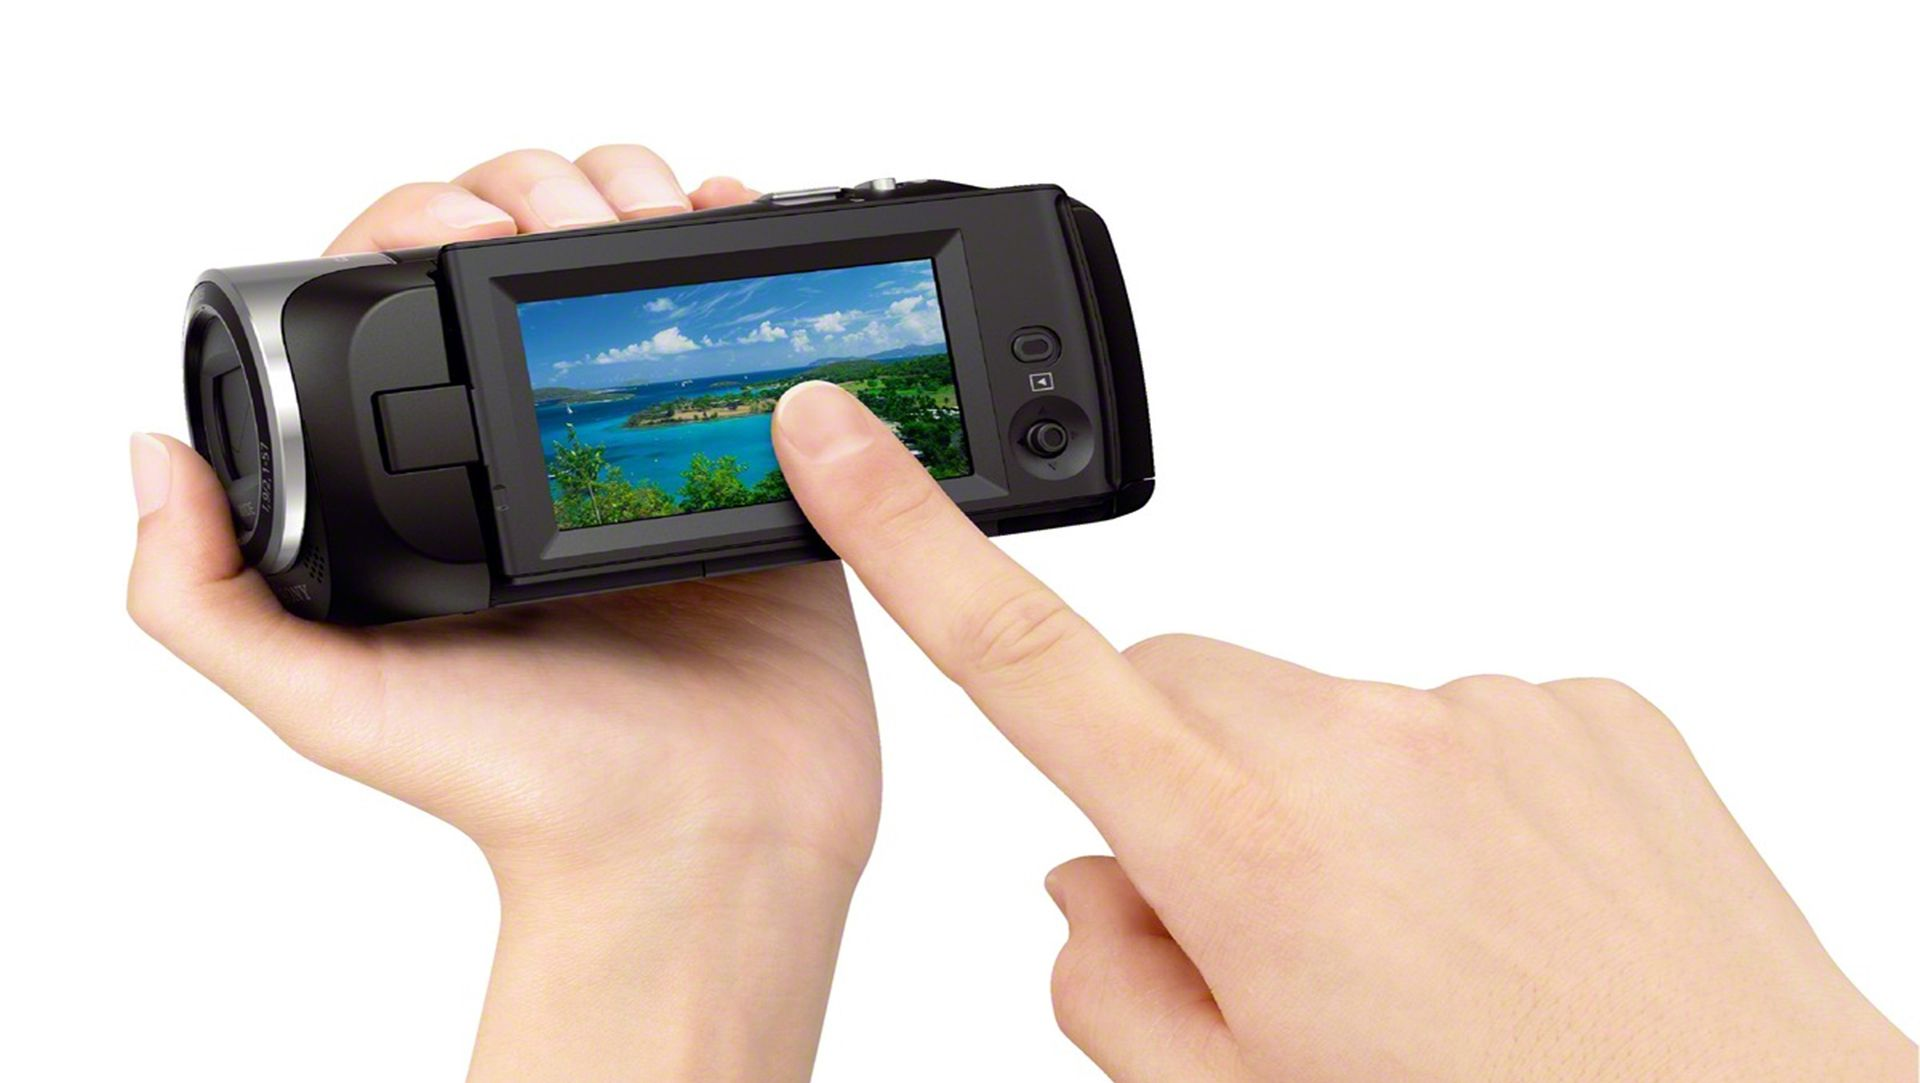 Ces 2014 Sony Announces Seven Hd Handycam Camcorders At Hdr Pj810 Full Camcorder Priced From 230 To